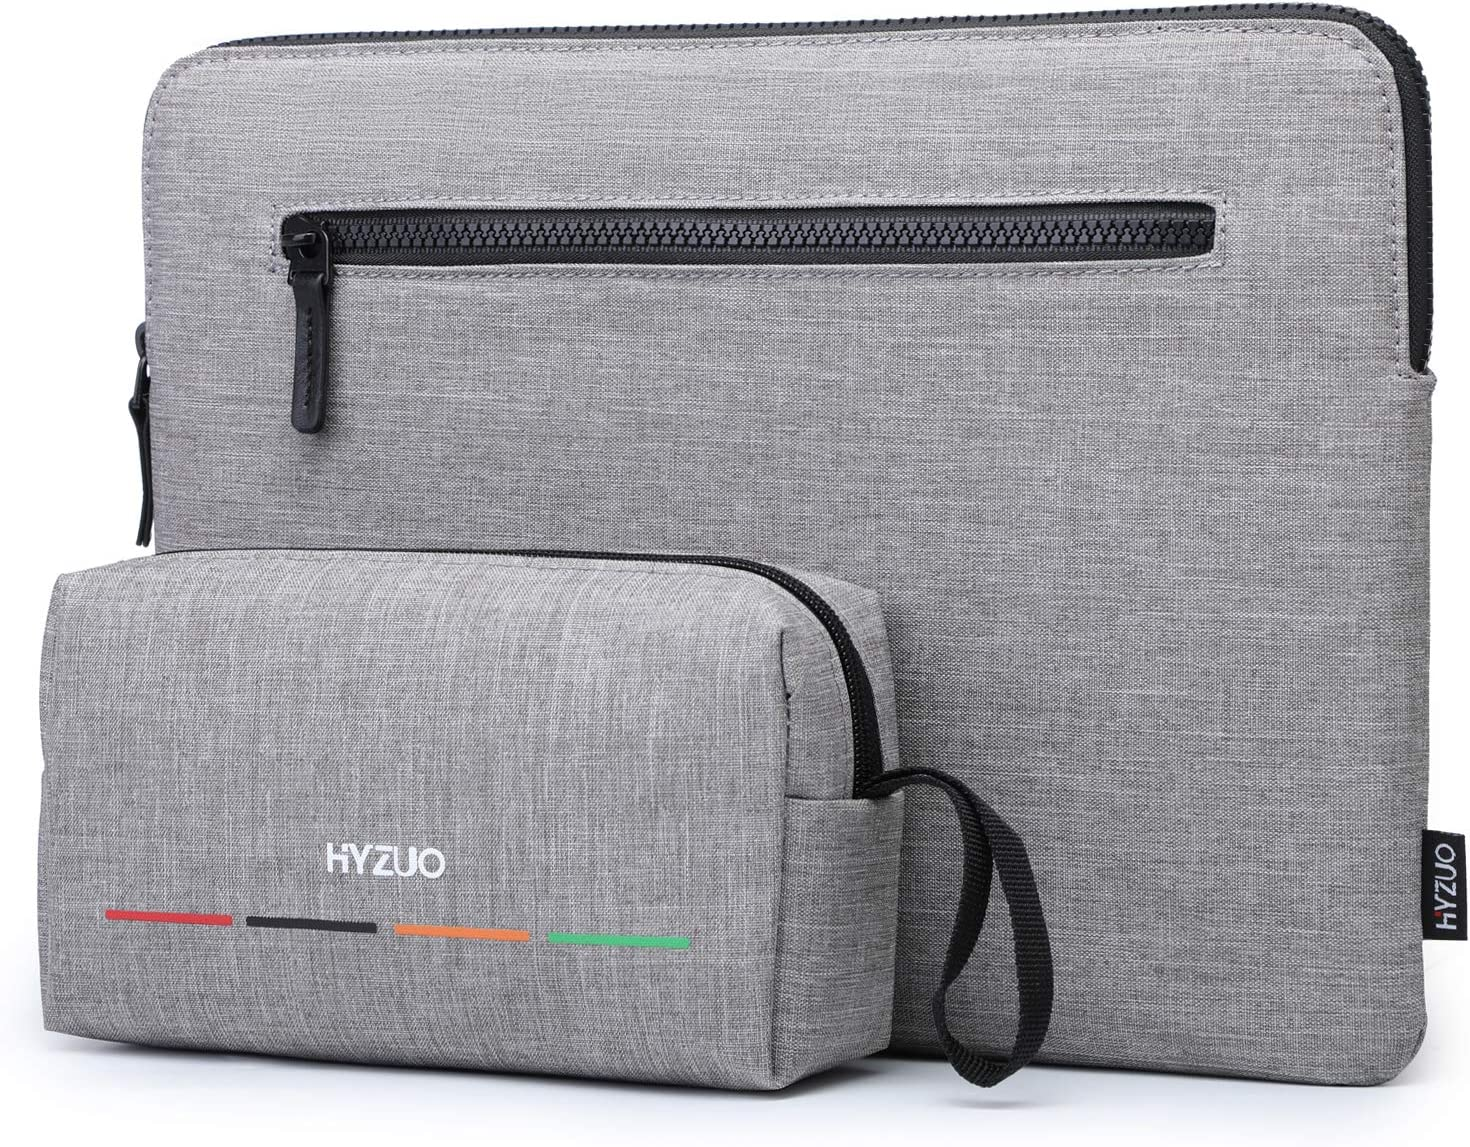 HYZUO 13 Inch Laptop Sleeve Slim Case Compatible with MacBook Air 13 M1 2018-2021/MacBook Pro 13 M1 2016-2021/Dell XPS 13/Surface Pro X 7 6 5 4 3/iPad Pro 12.9 2018-2021 M1/Samsung Galaxy Book S, Gray